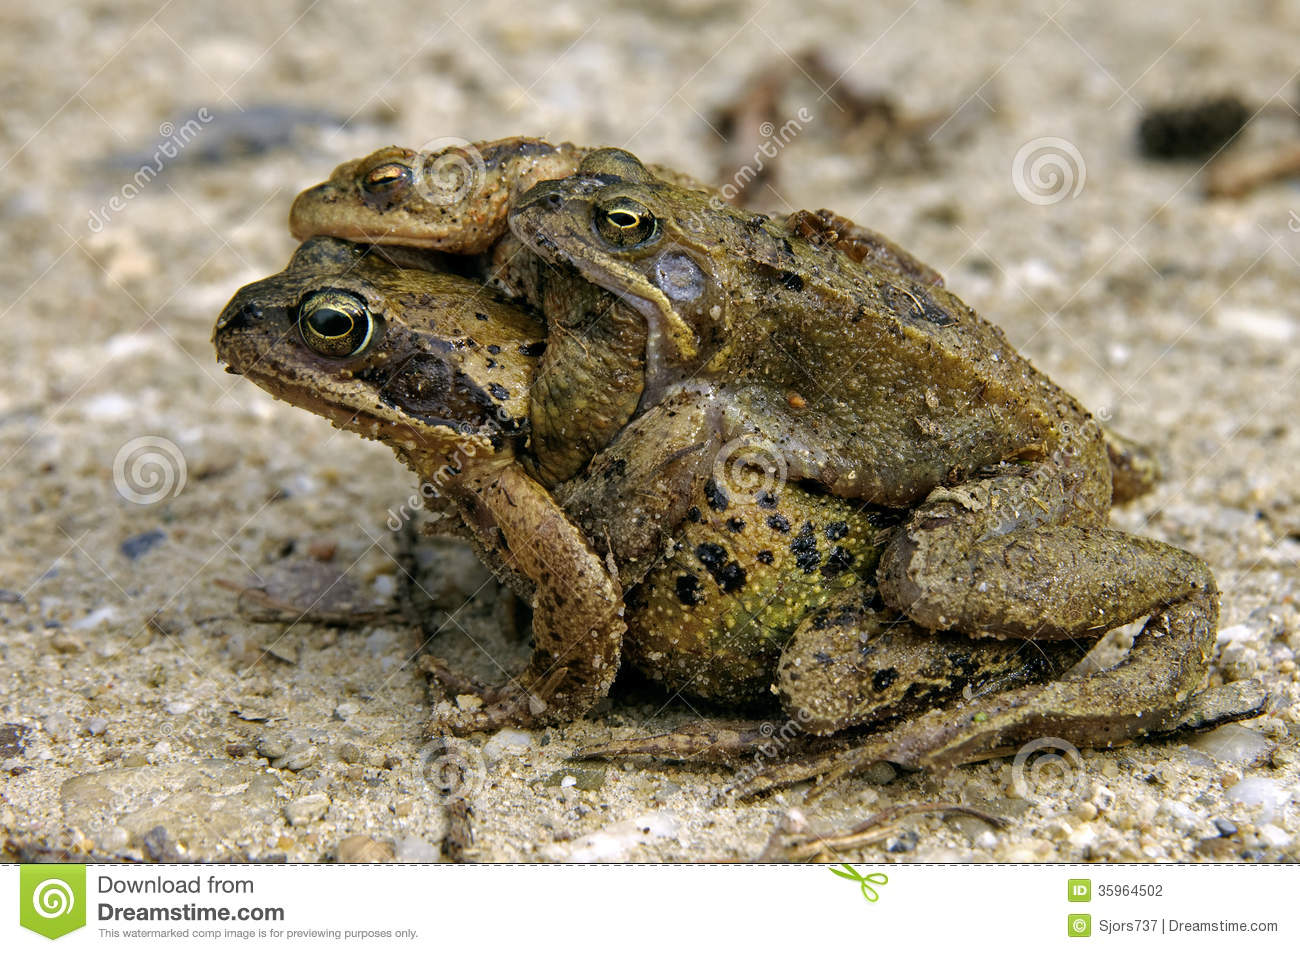 Amphibians Toads The amphibians pull or toad